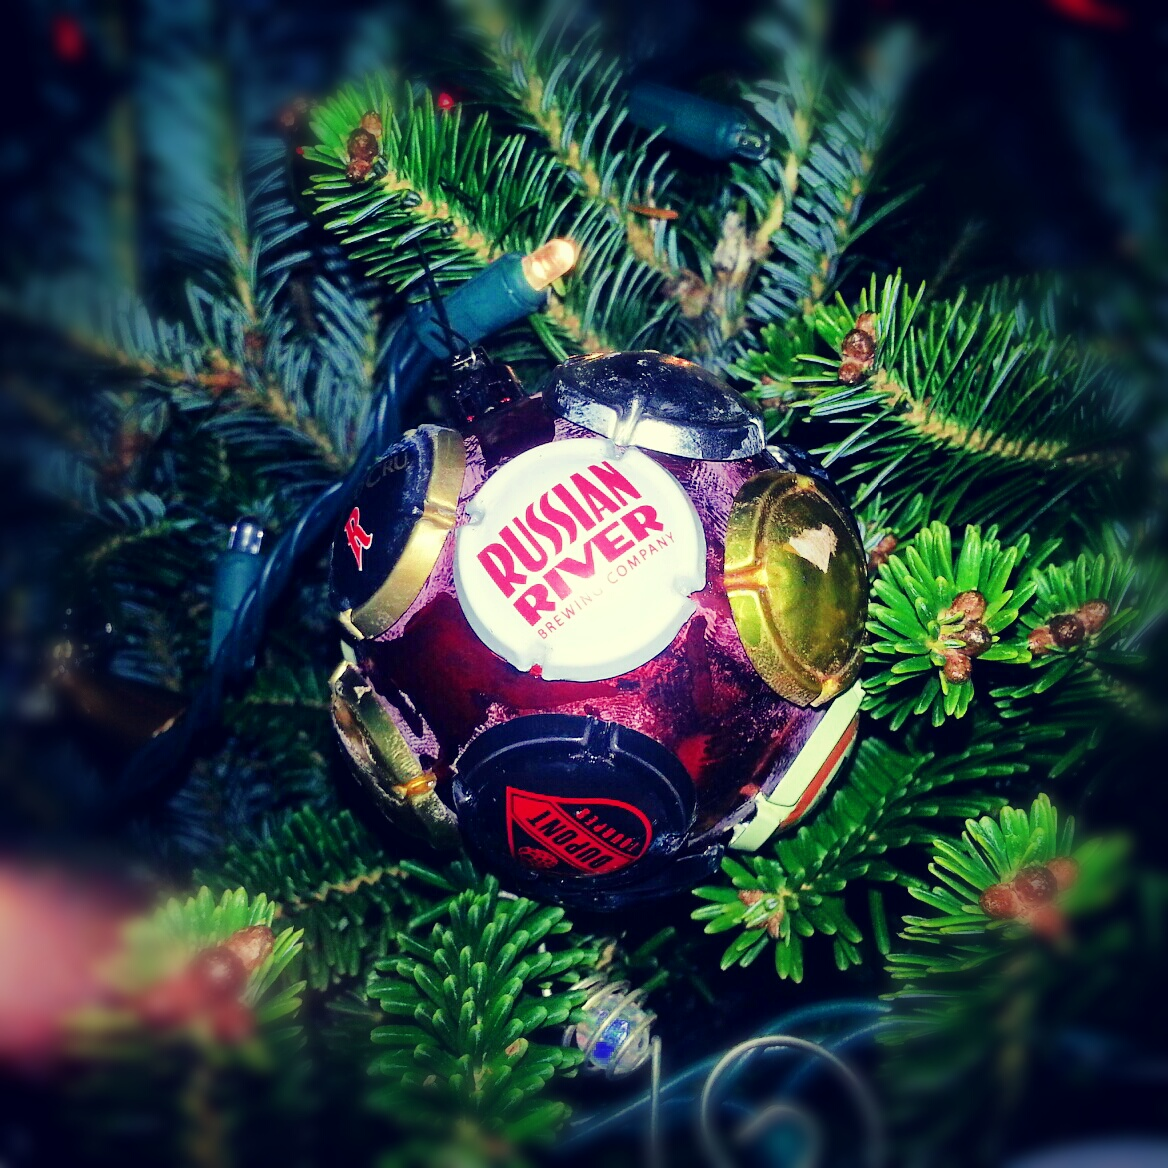 How to Make Your Own Custom Beer Nerd Christmas Ornament | Urban ...